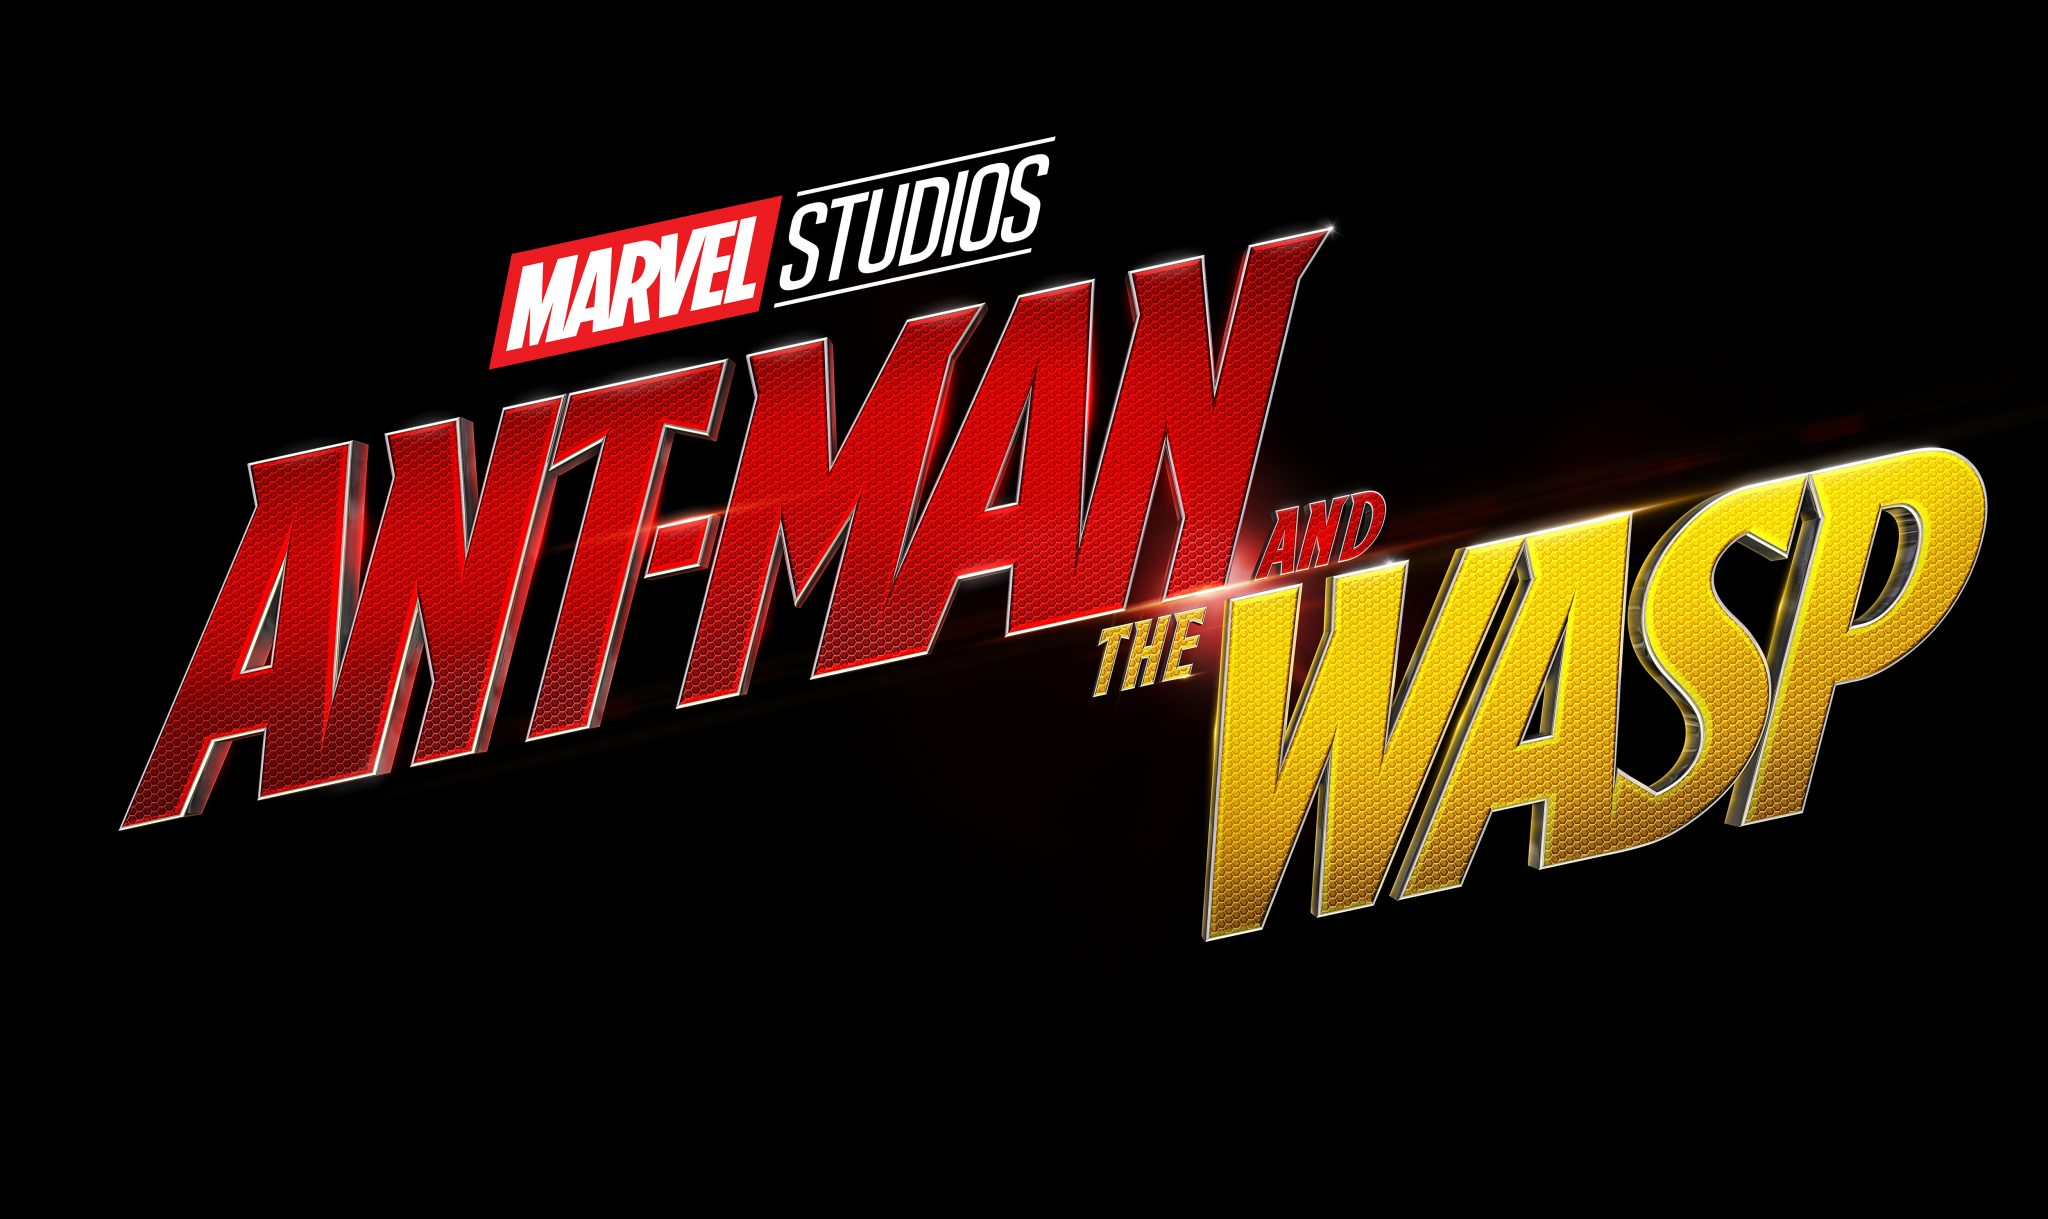 First Look:  Marvel Studios' ANT-MAN AND THE WASP